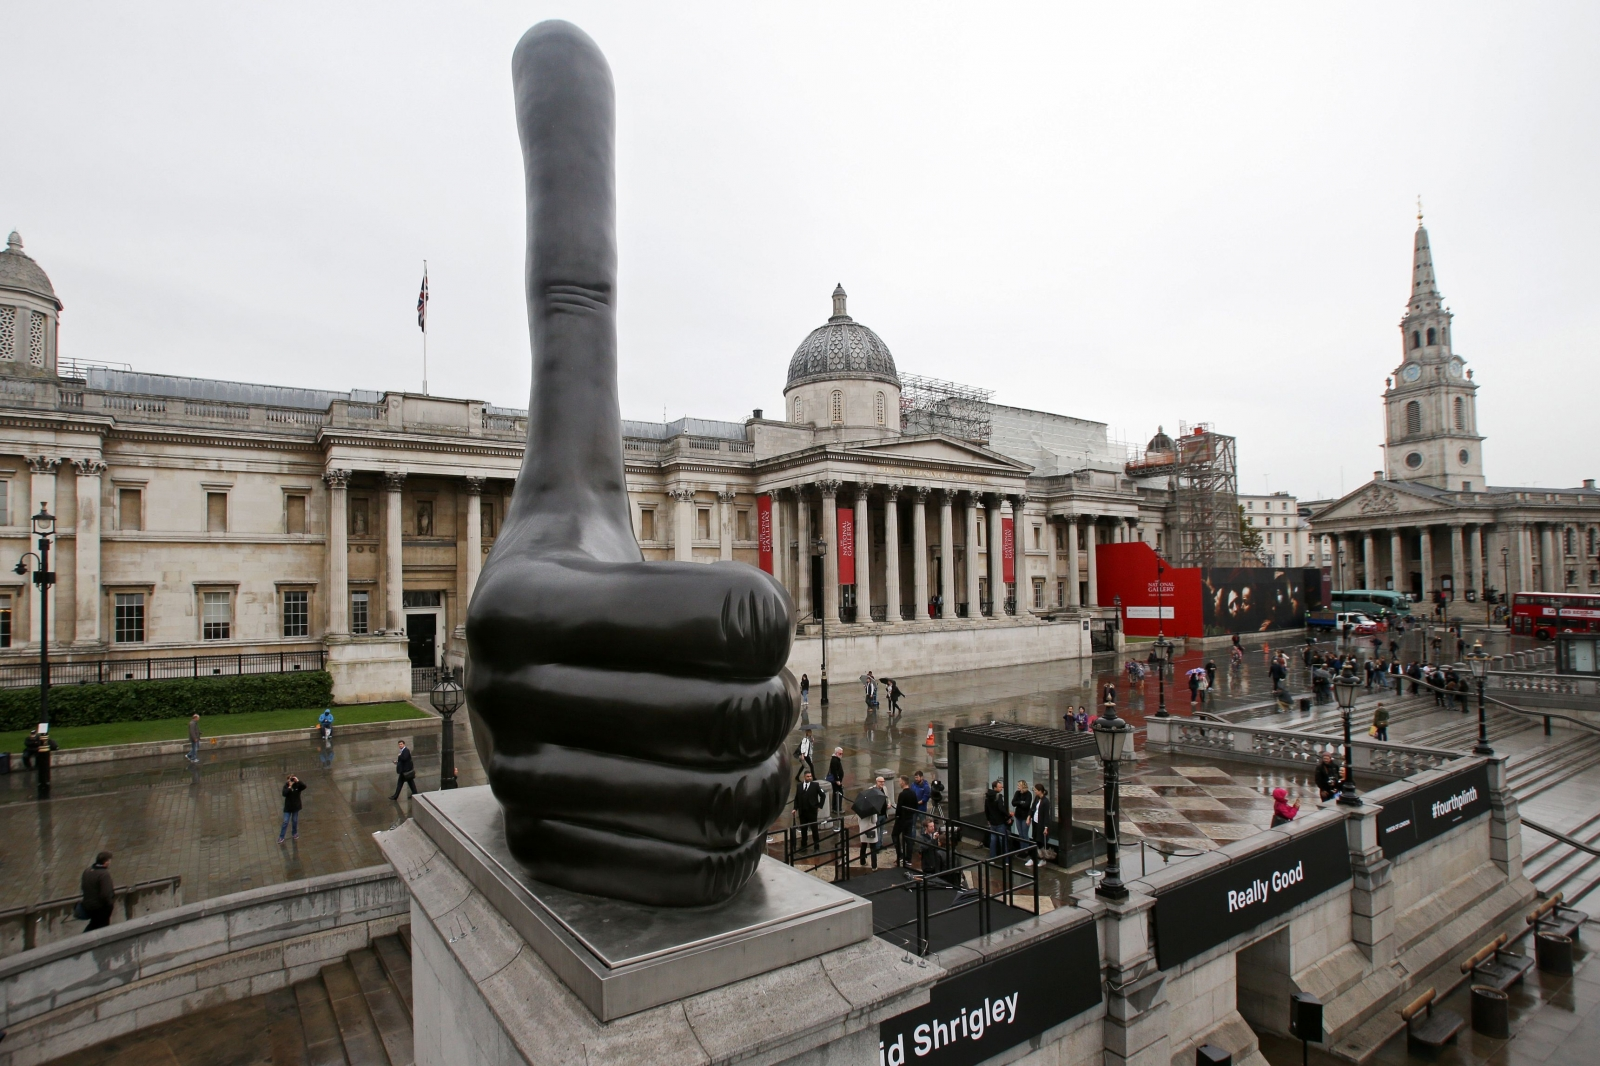 David Shrigley fourth plinth